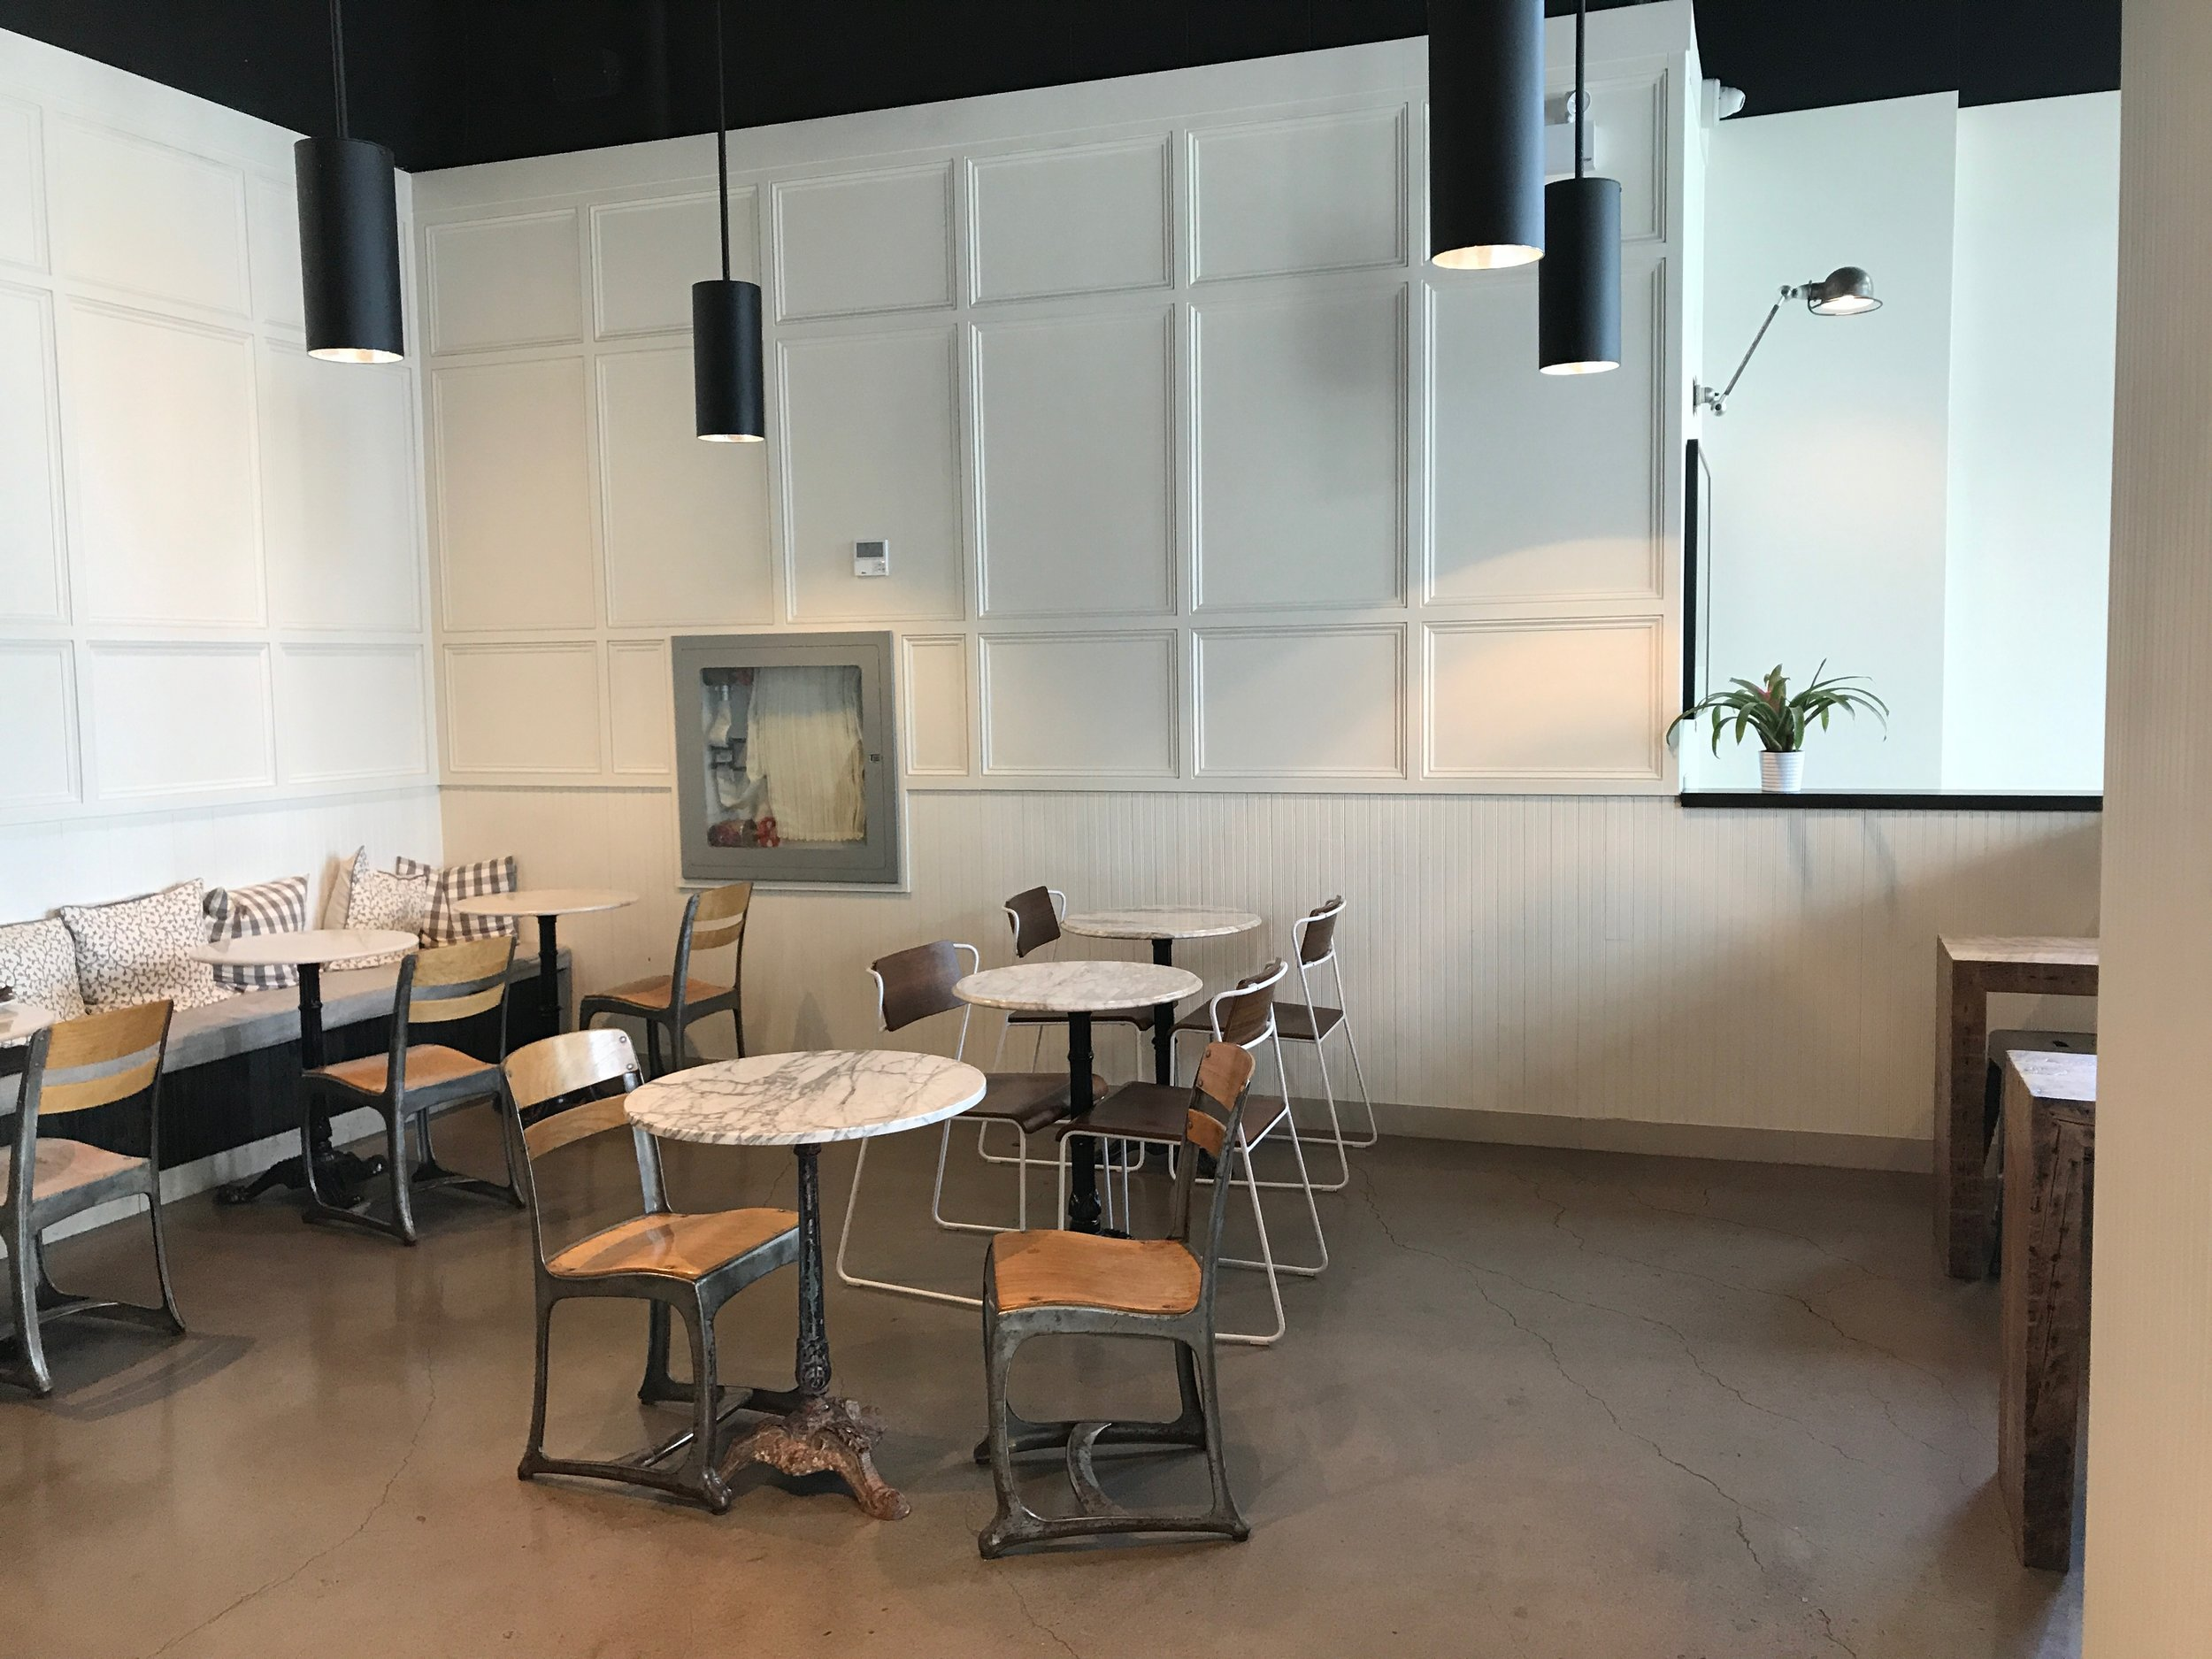 Picture of seating area with tables and removable chairs